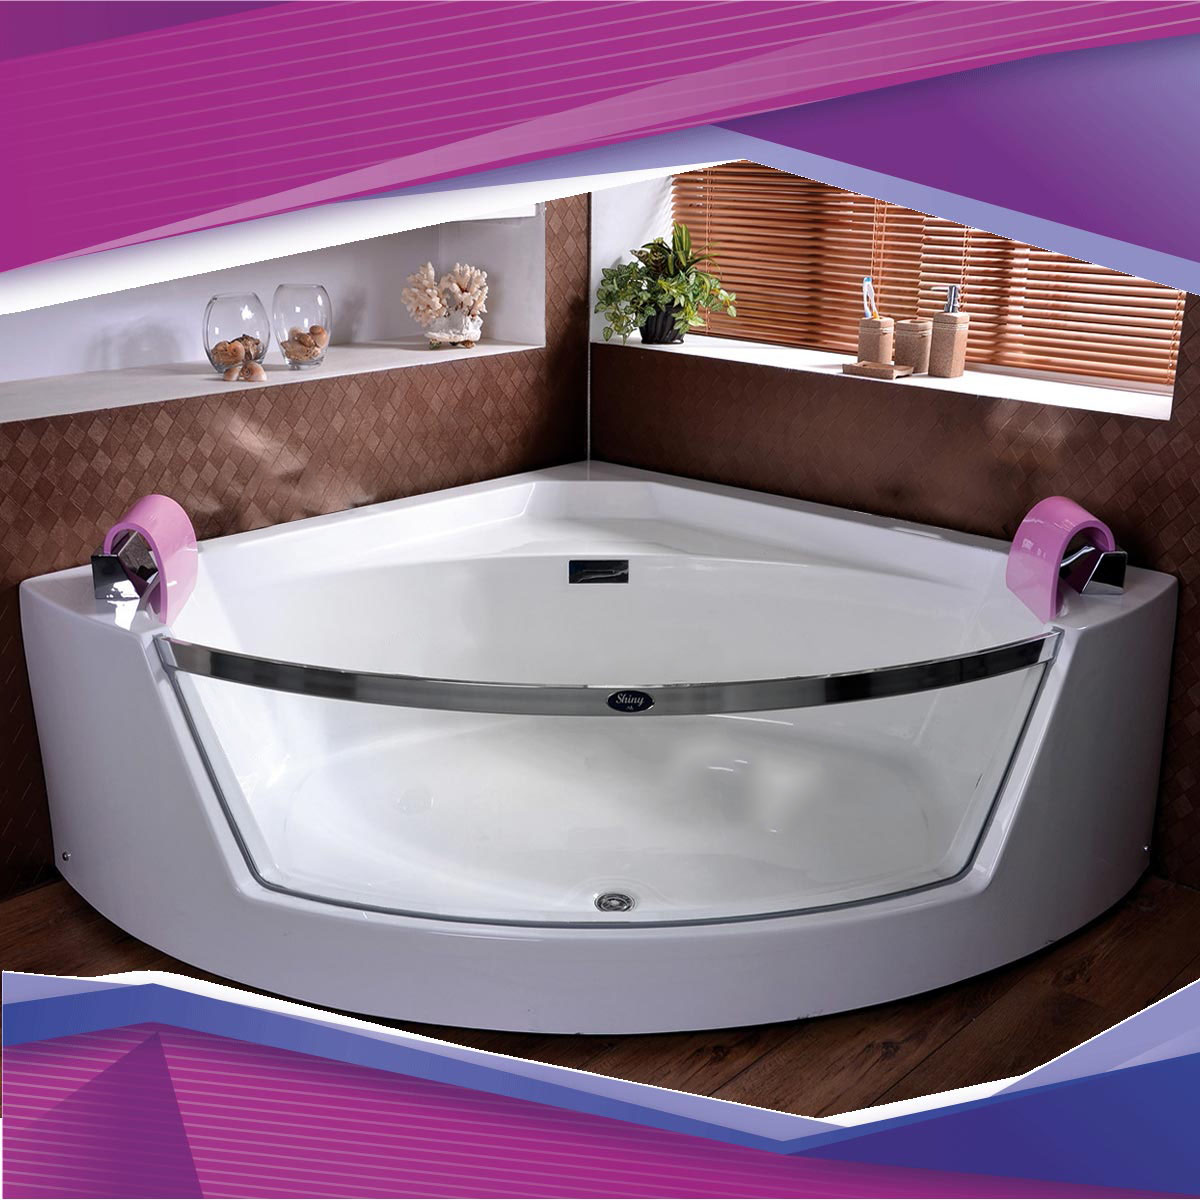 وان حمام شاینی Shiny Tub Model N-BT028